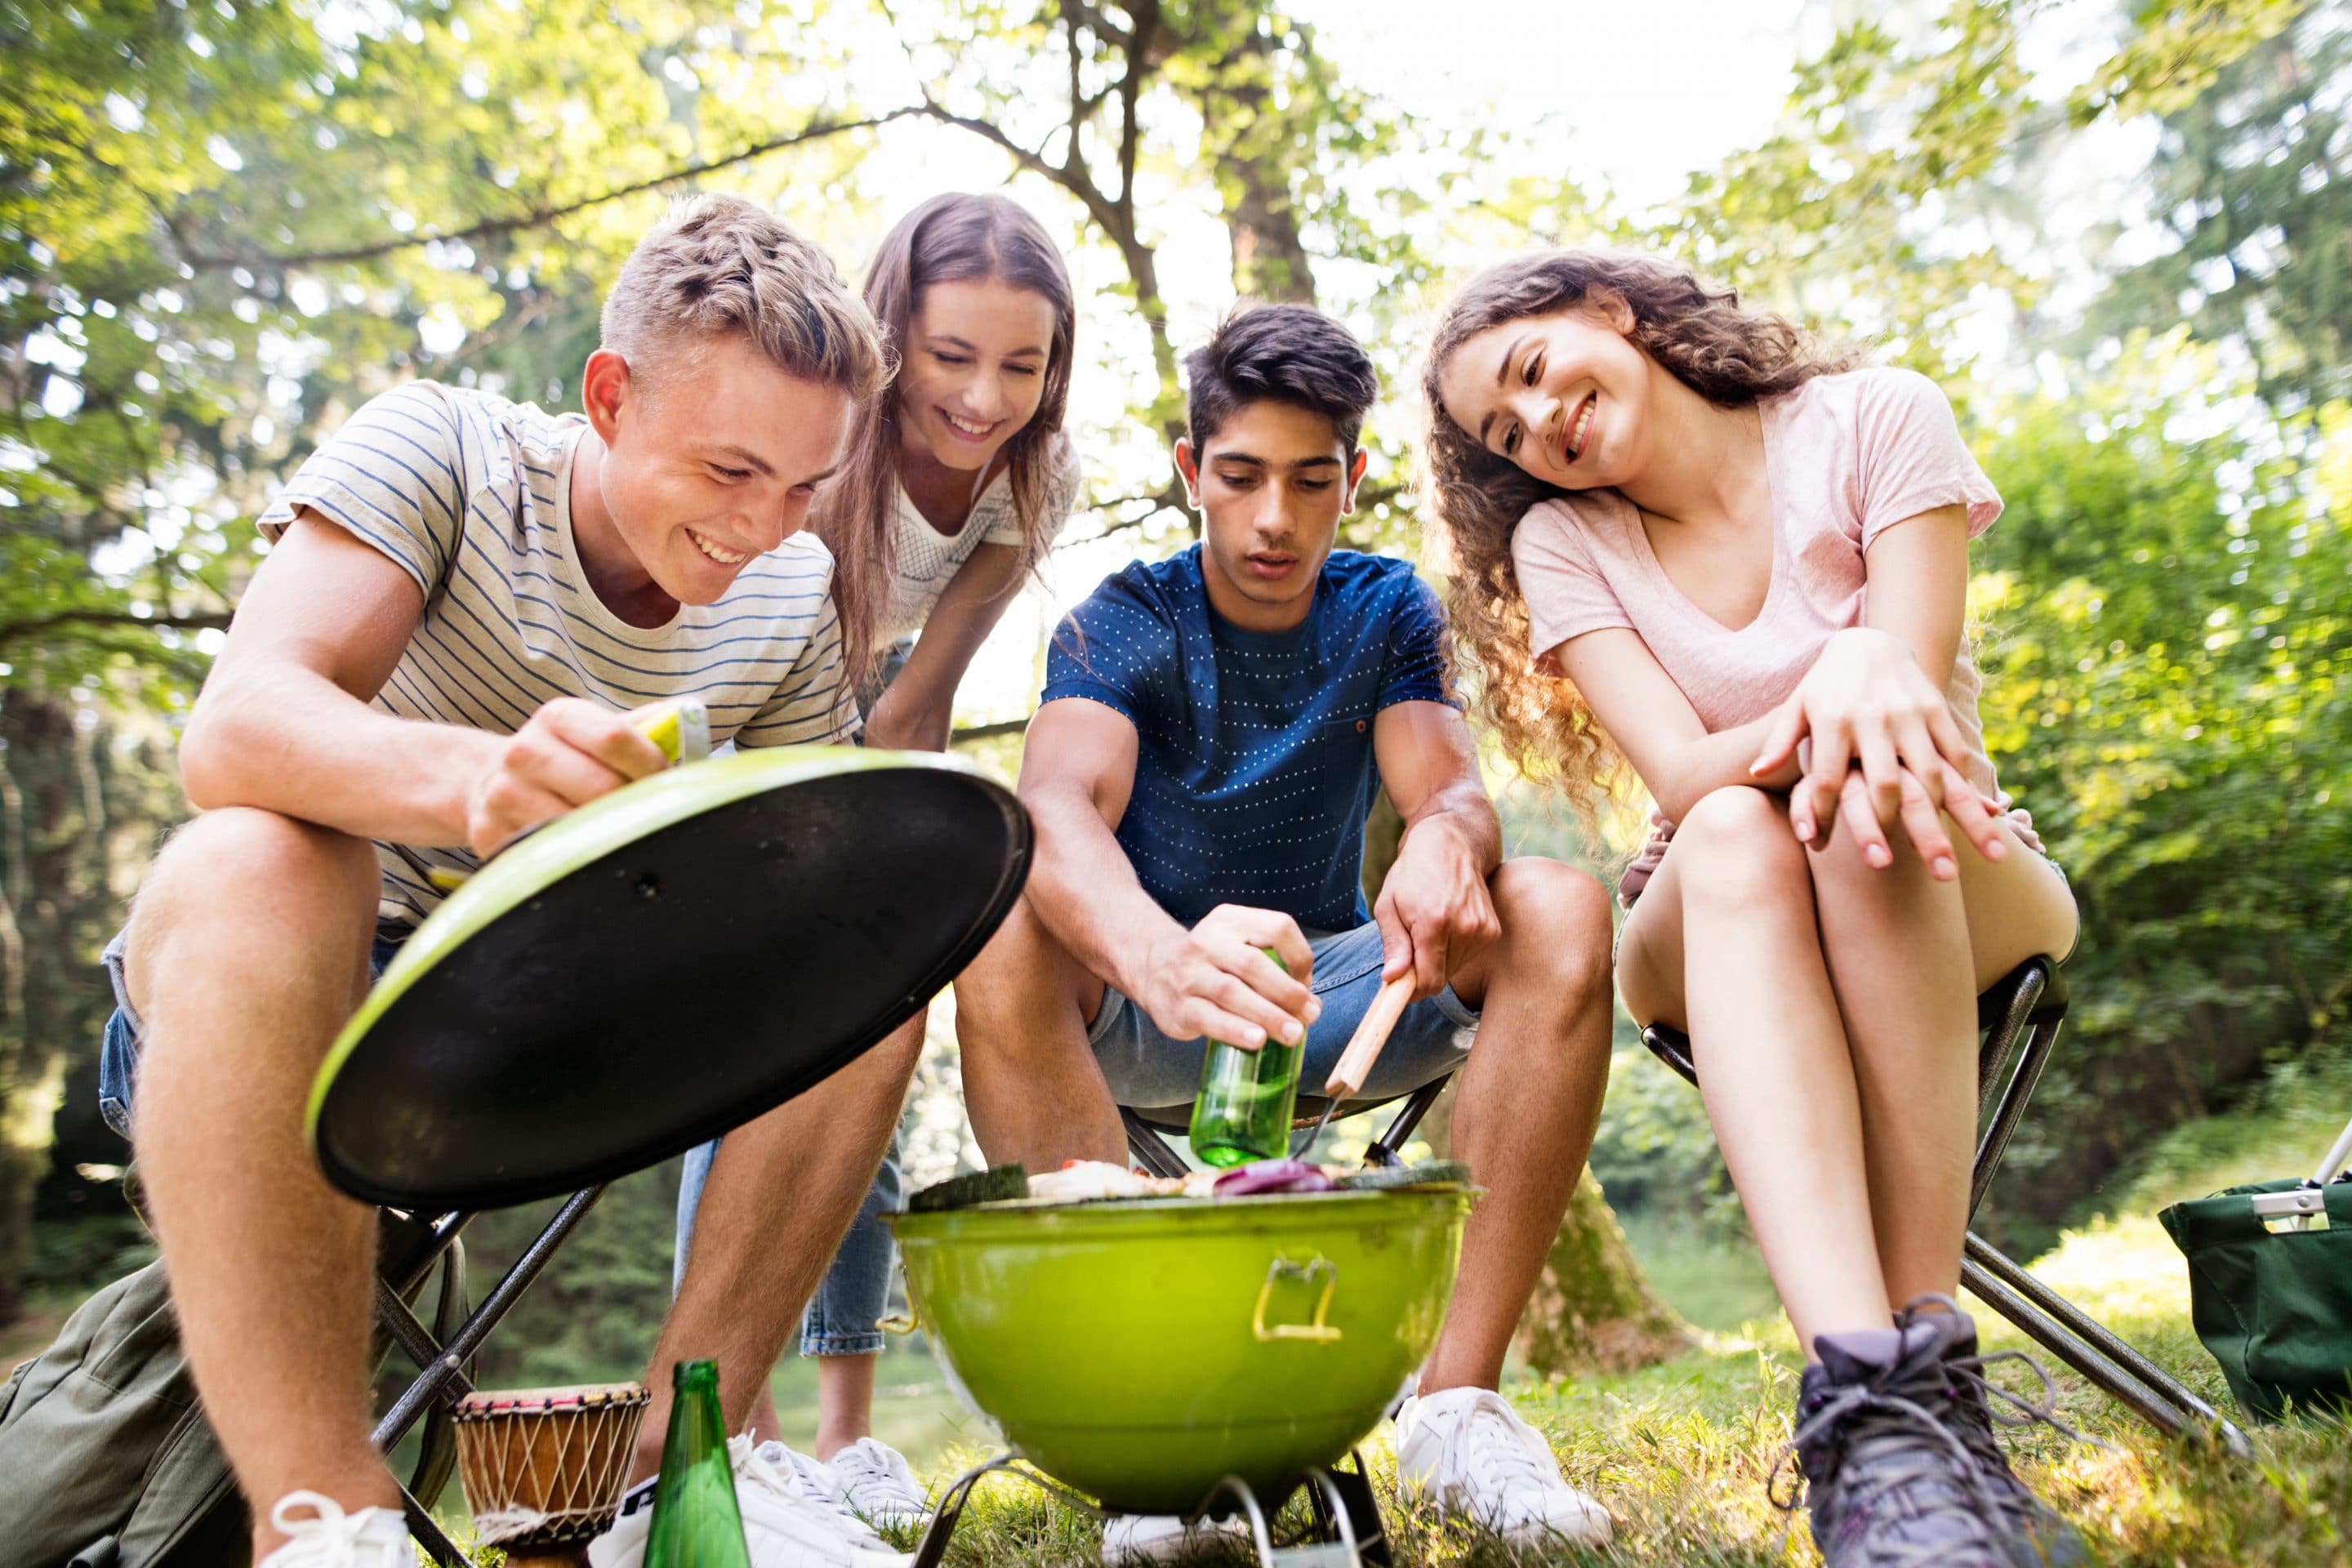 Klimaschonend Grillen 1 teenagers camping cooking meat on barbecue grill PEF3G9T scaled